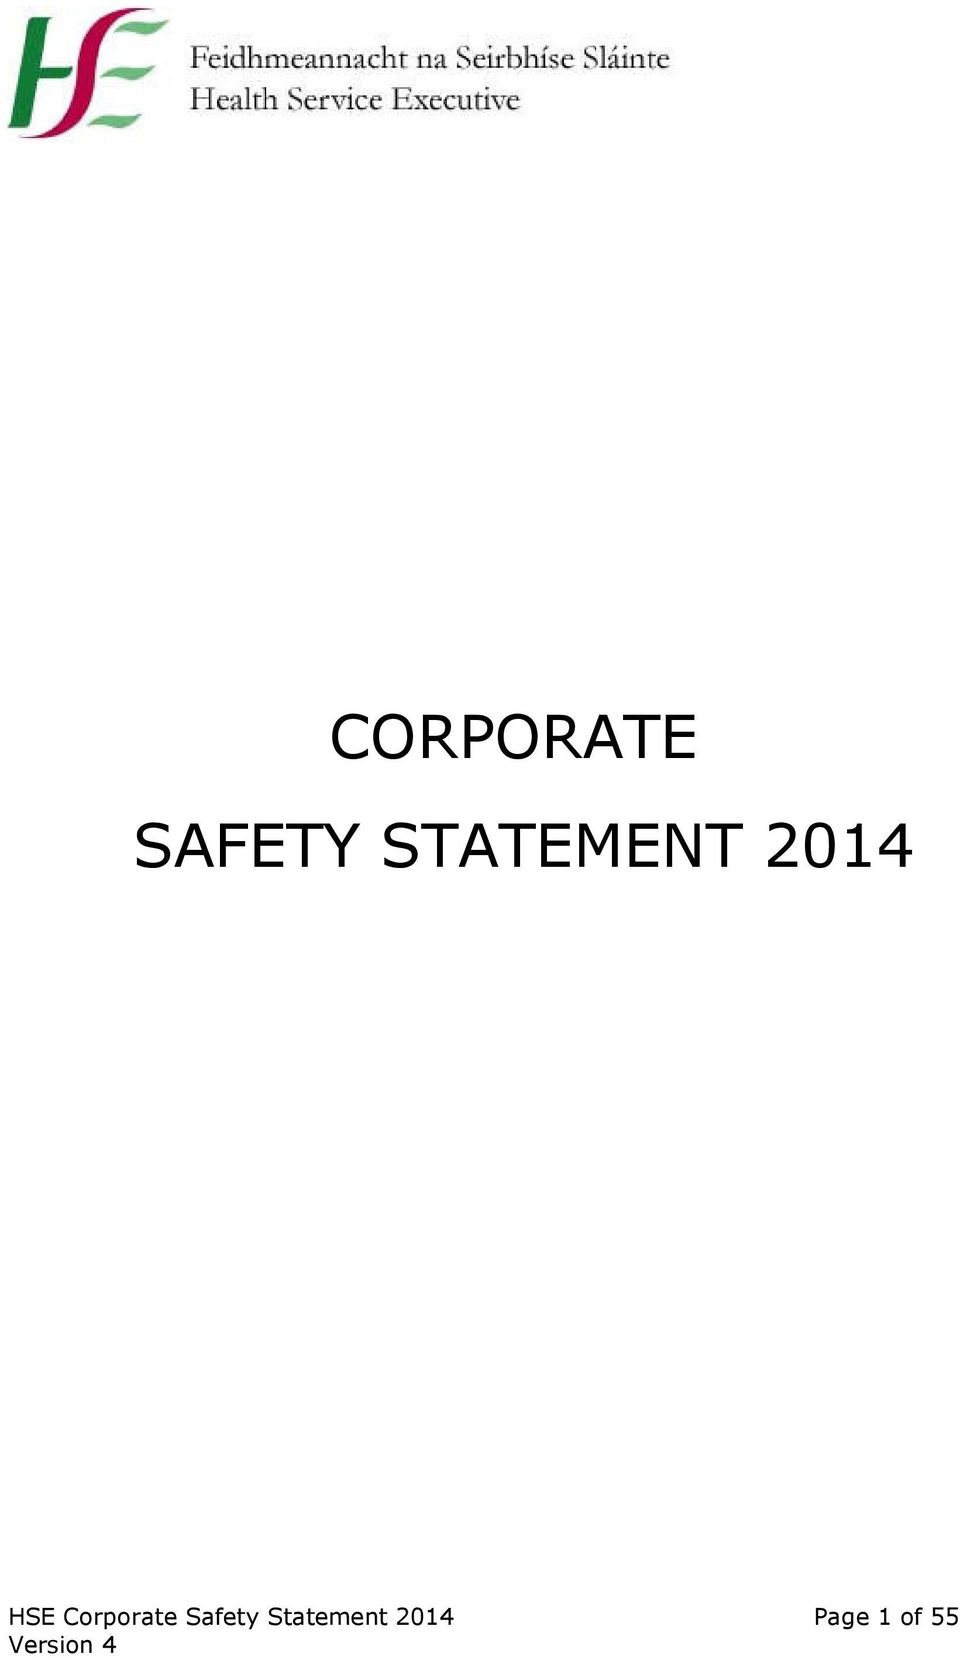 Corporate Safety